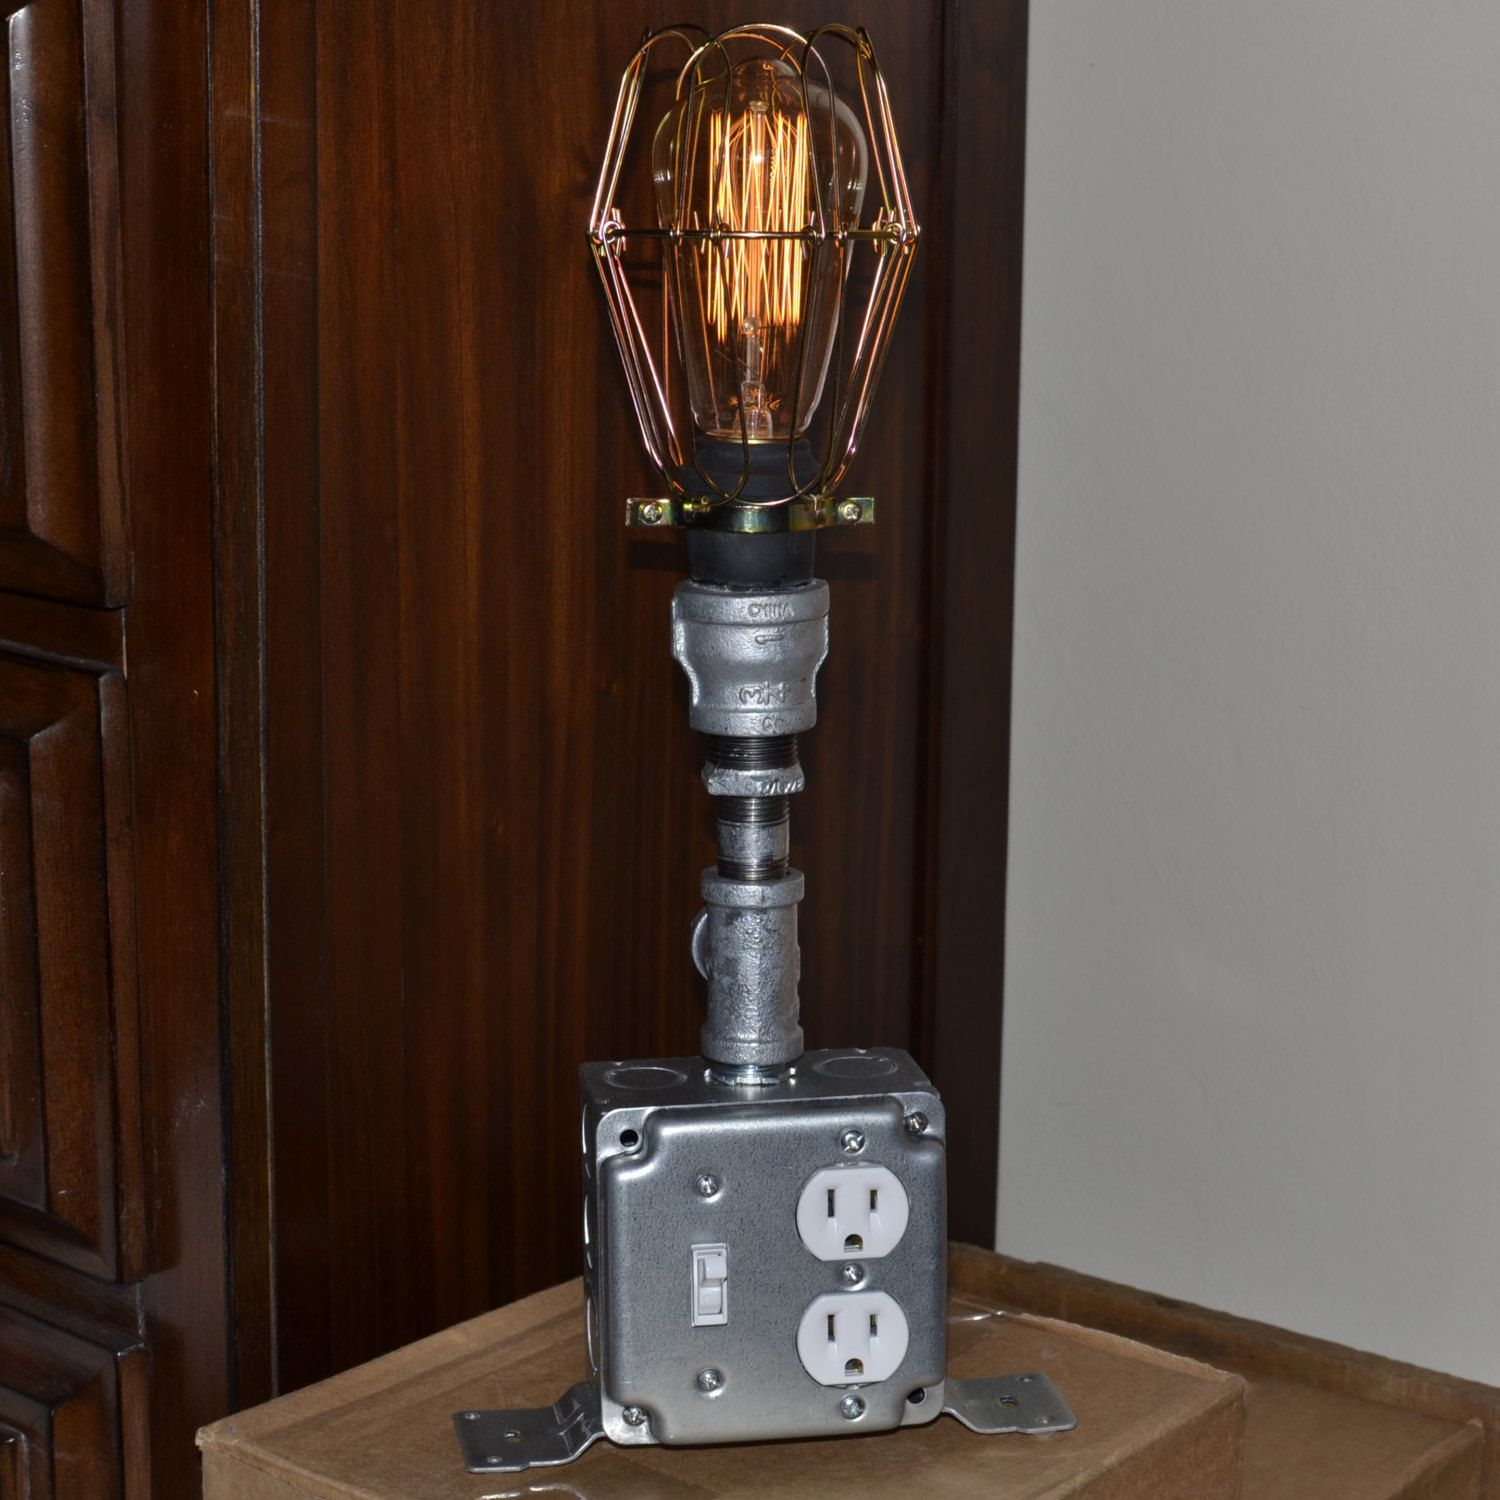 steampunk lighting. perfect lighting upscaled recycled industrial lamp home decor lighting steampunk light  lamp with outlet and on lighting n